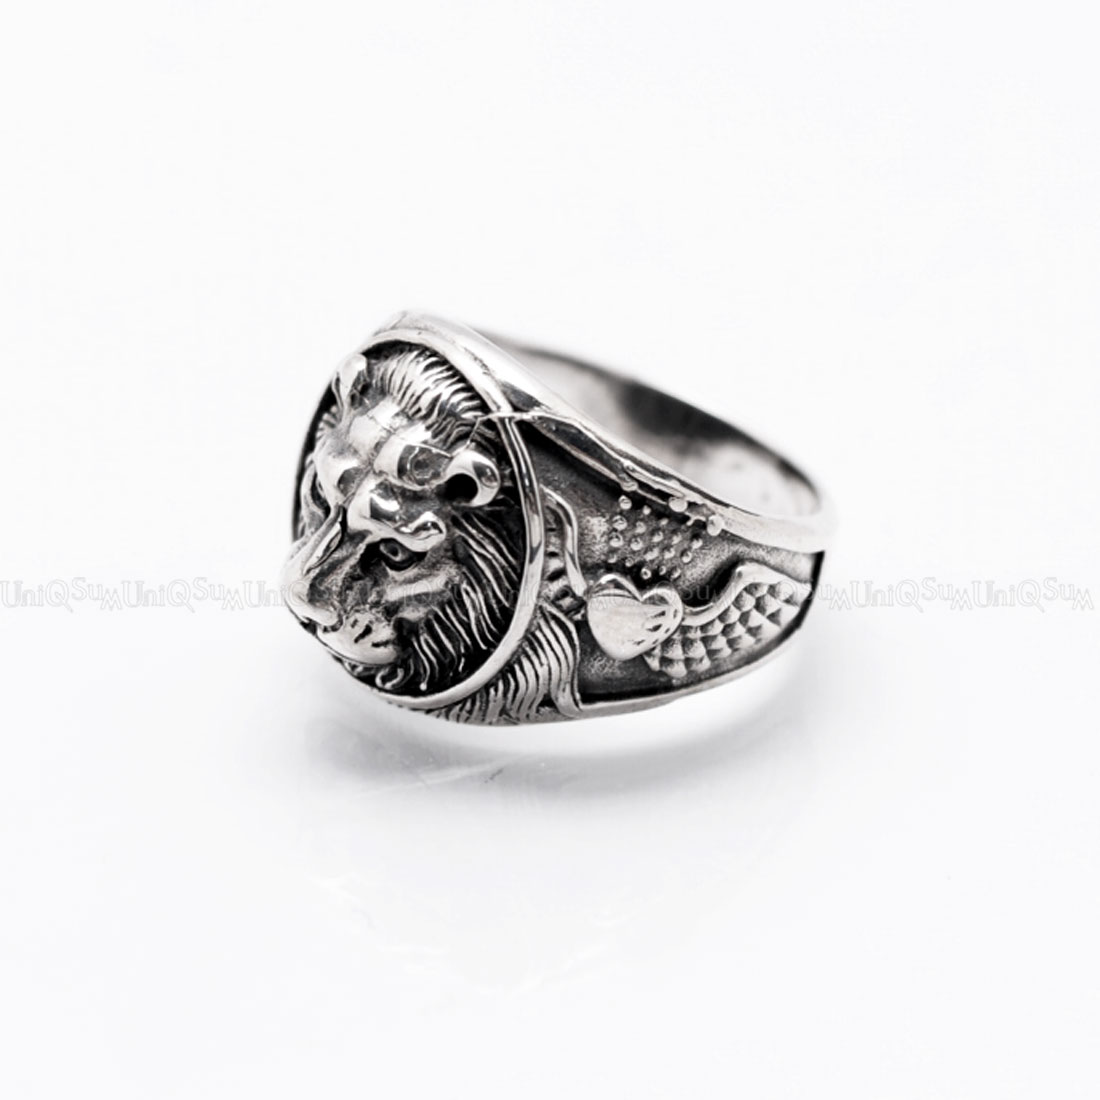 man rings cm c ring cil woman en wedding eshop bijoux m